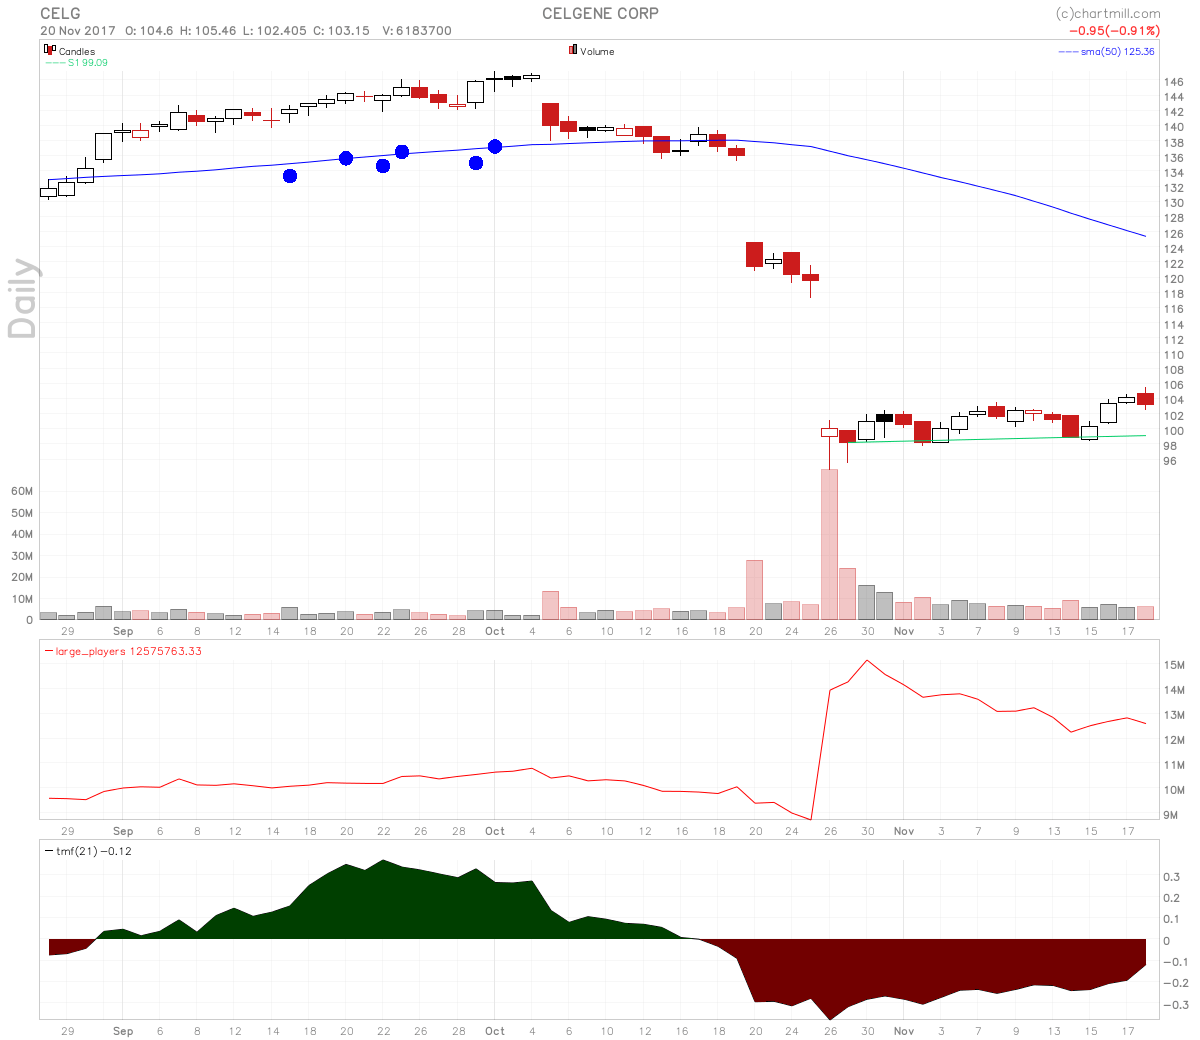 Celgene Stock Now Oversold After Miss and Stopped REVOLVE Trial